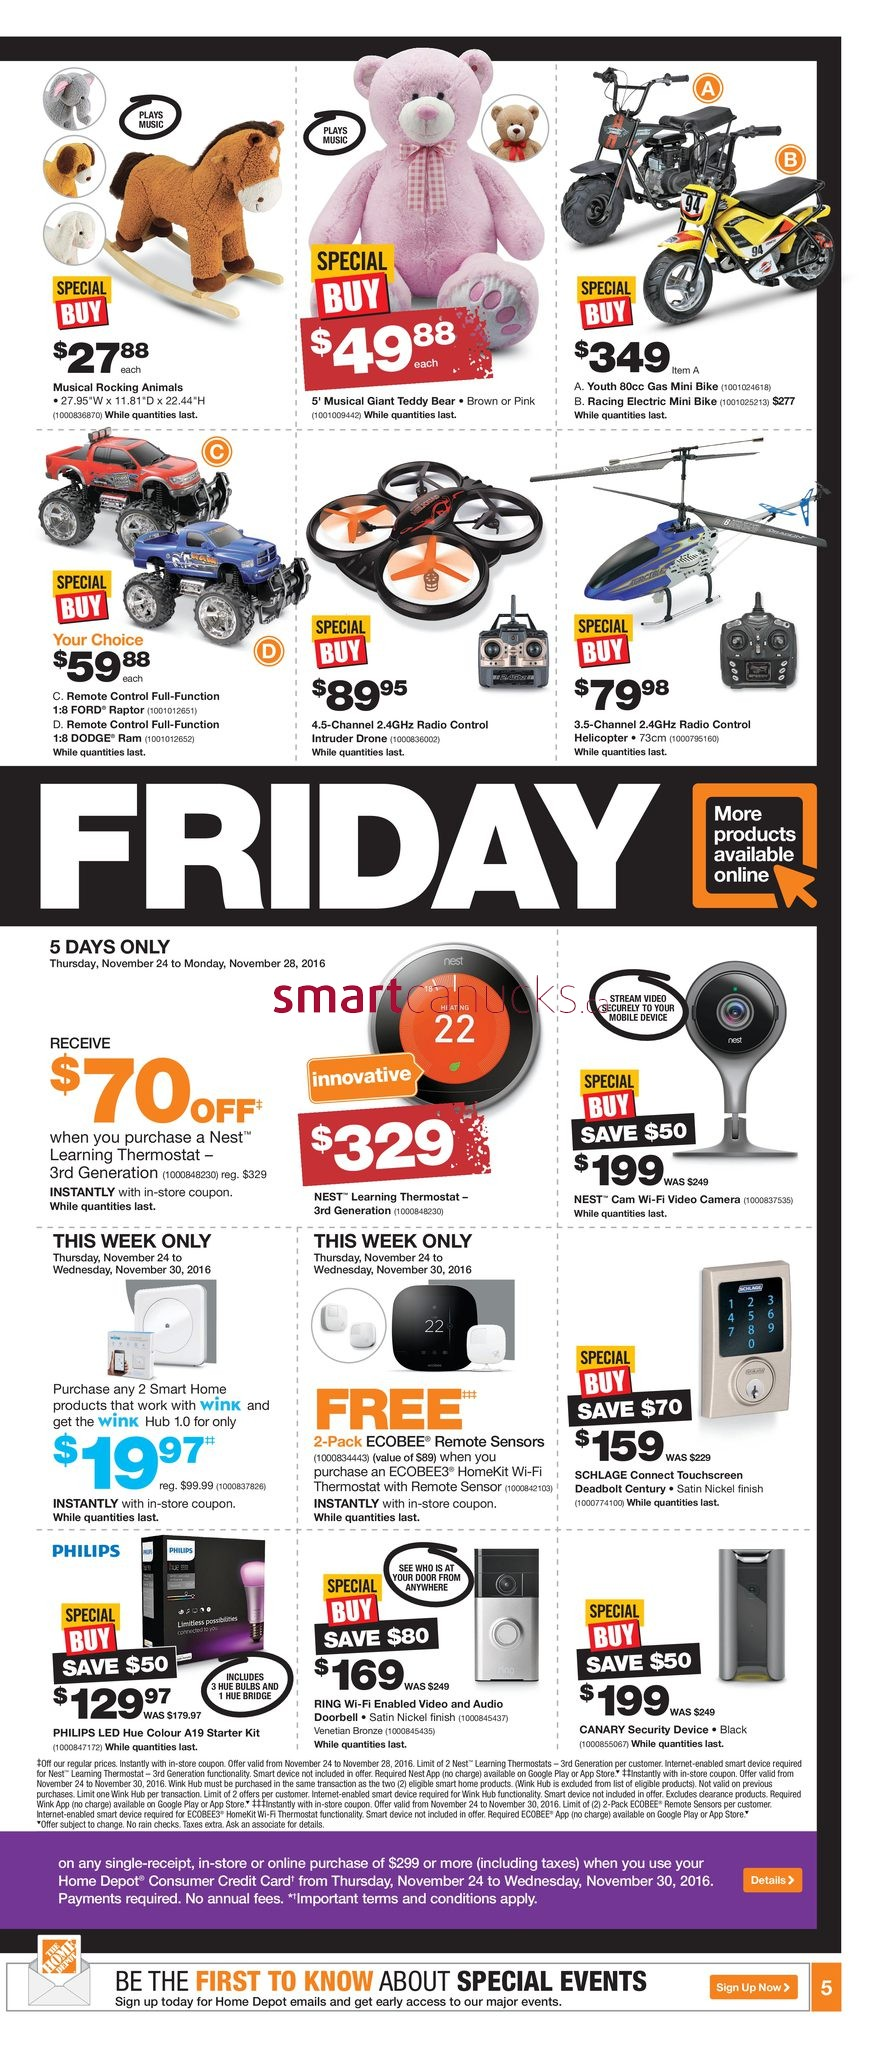 Home Depot and Lowe's are both hosting Spring Black Friday sales, with great deals on barbecue grills, lawnmowers, appliances, and more.